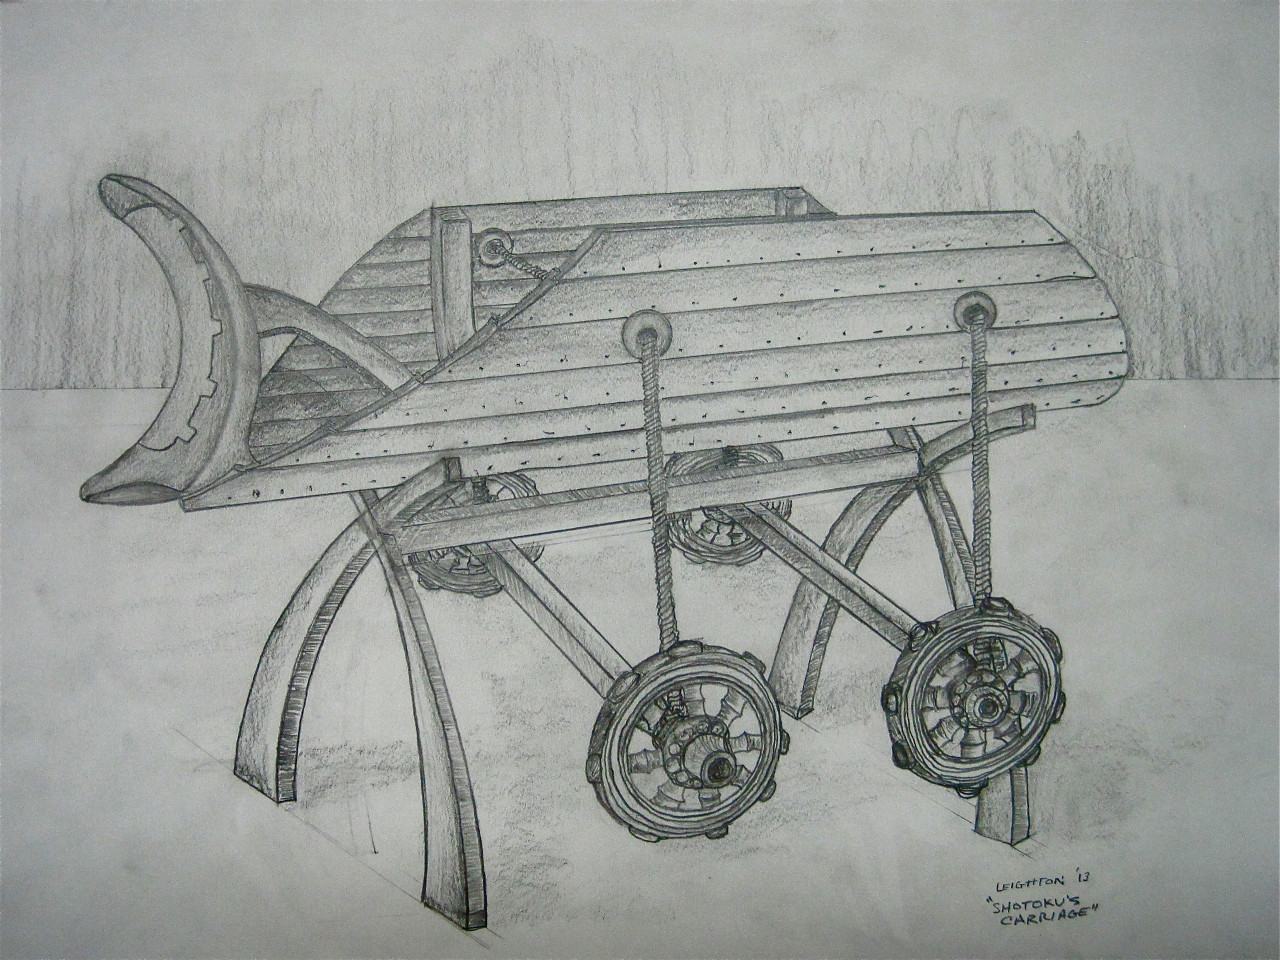 Shotoku's Carriage image 6